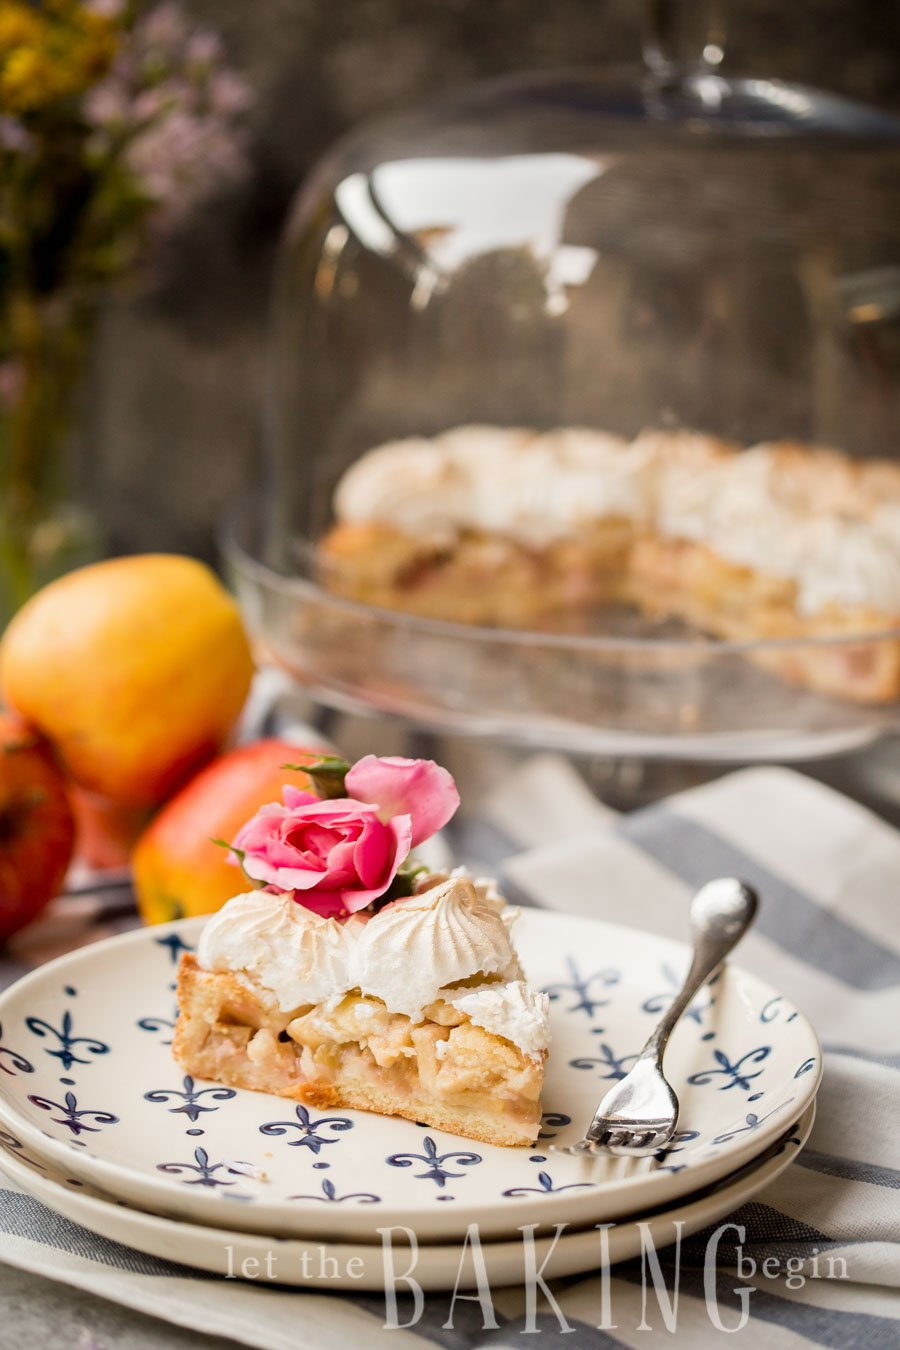 A slice of apple rhubarb meringue pirog on a plate topped with a pink flower with a fork.